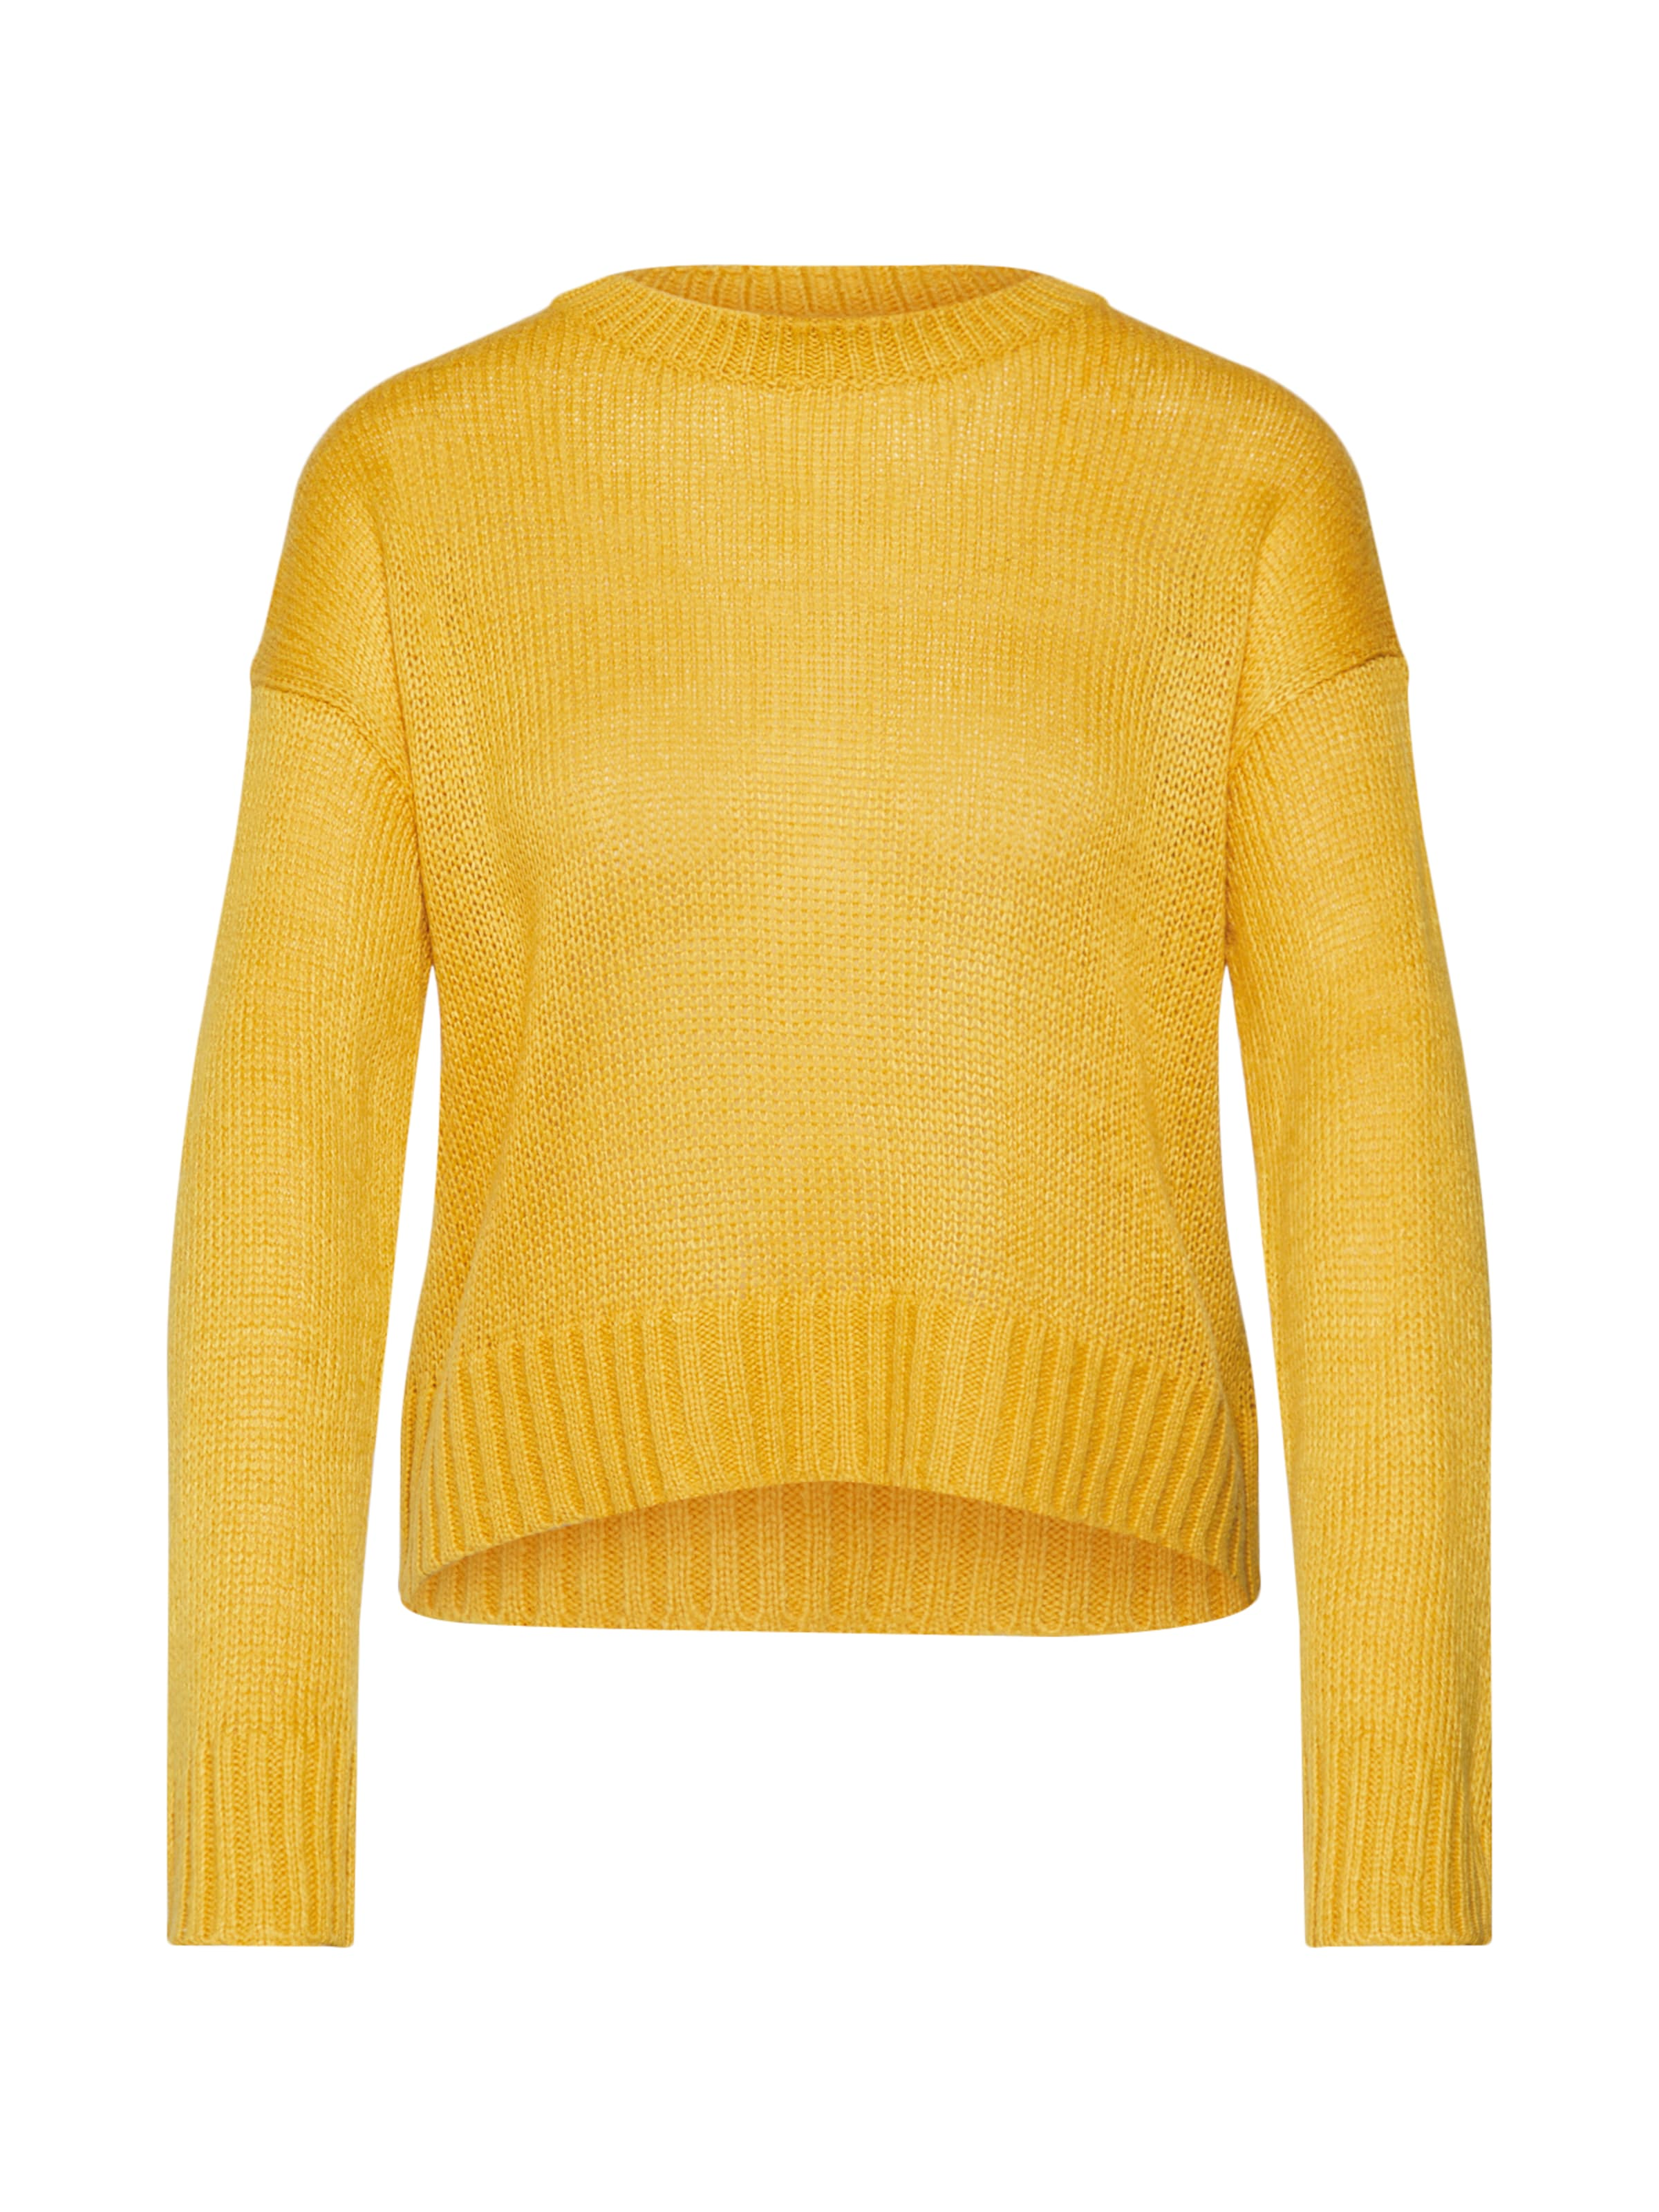 In Look Wei Pullover New 'jumper' T1cKFJl3